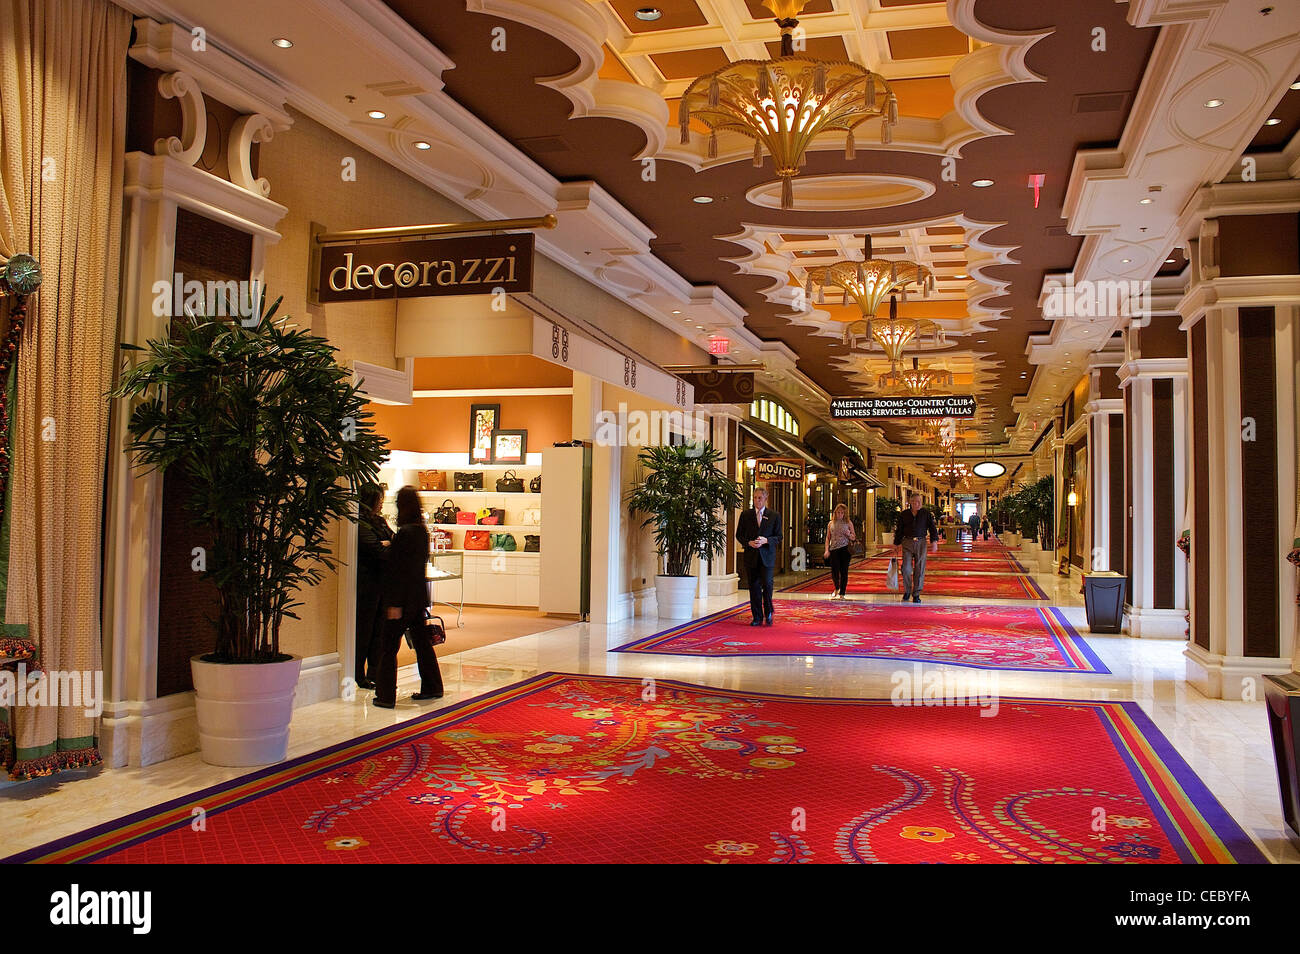 Elegant Kitchen Cabinets Las Vegas People Walk Through An Elegant Hall Lined With Shops